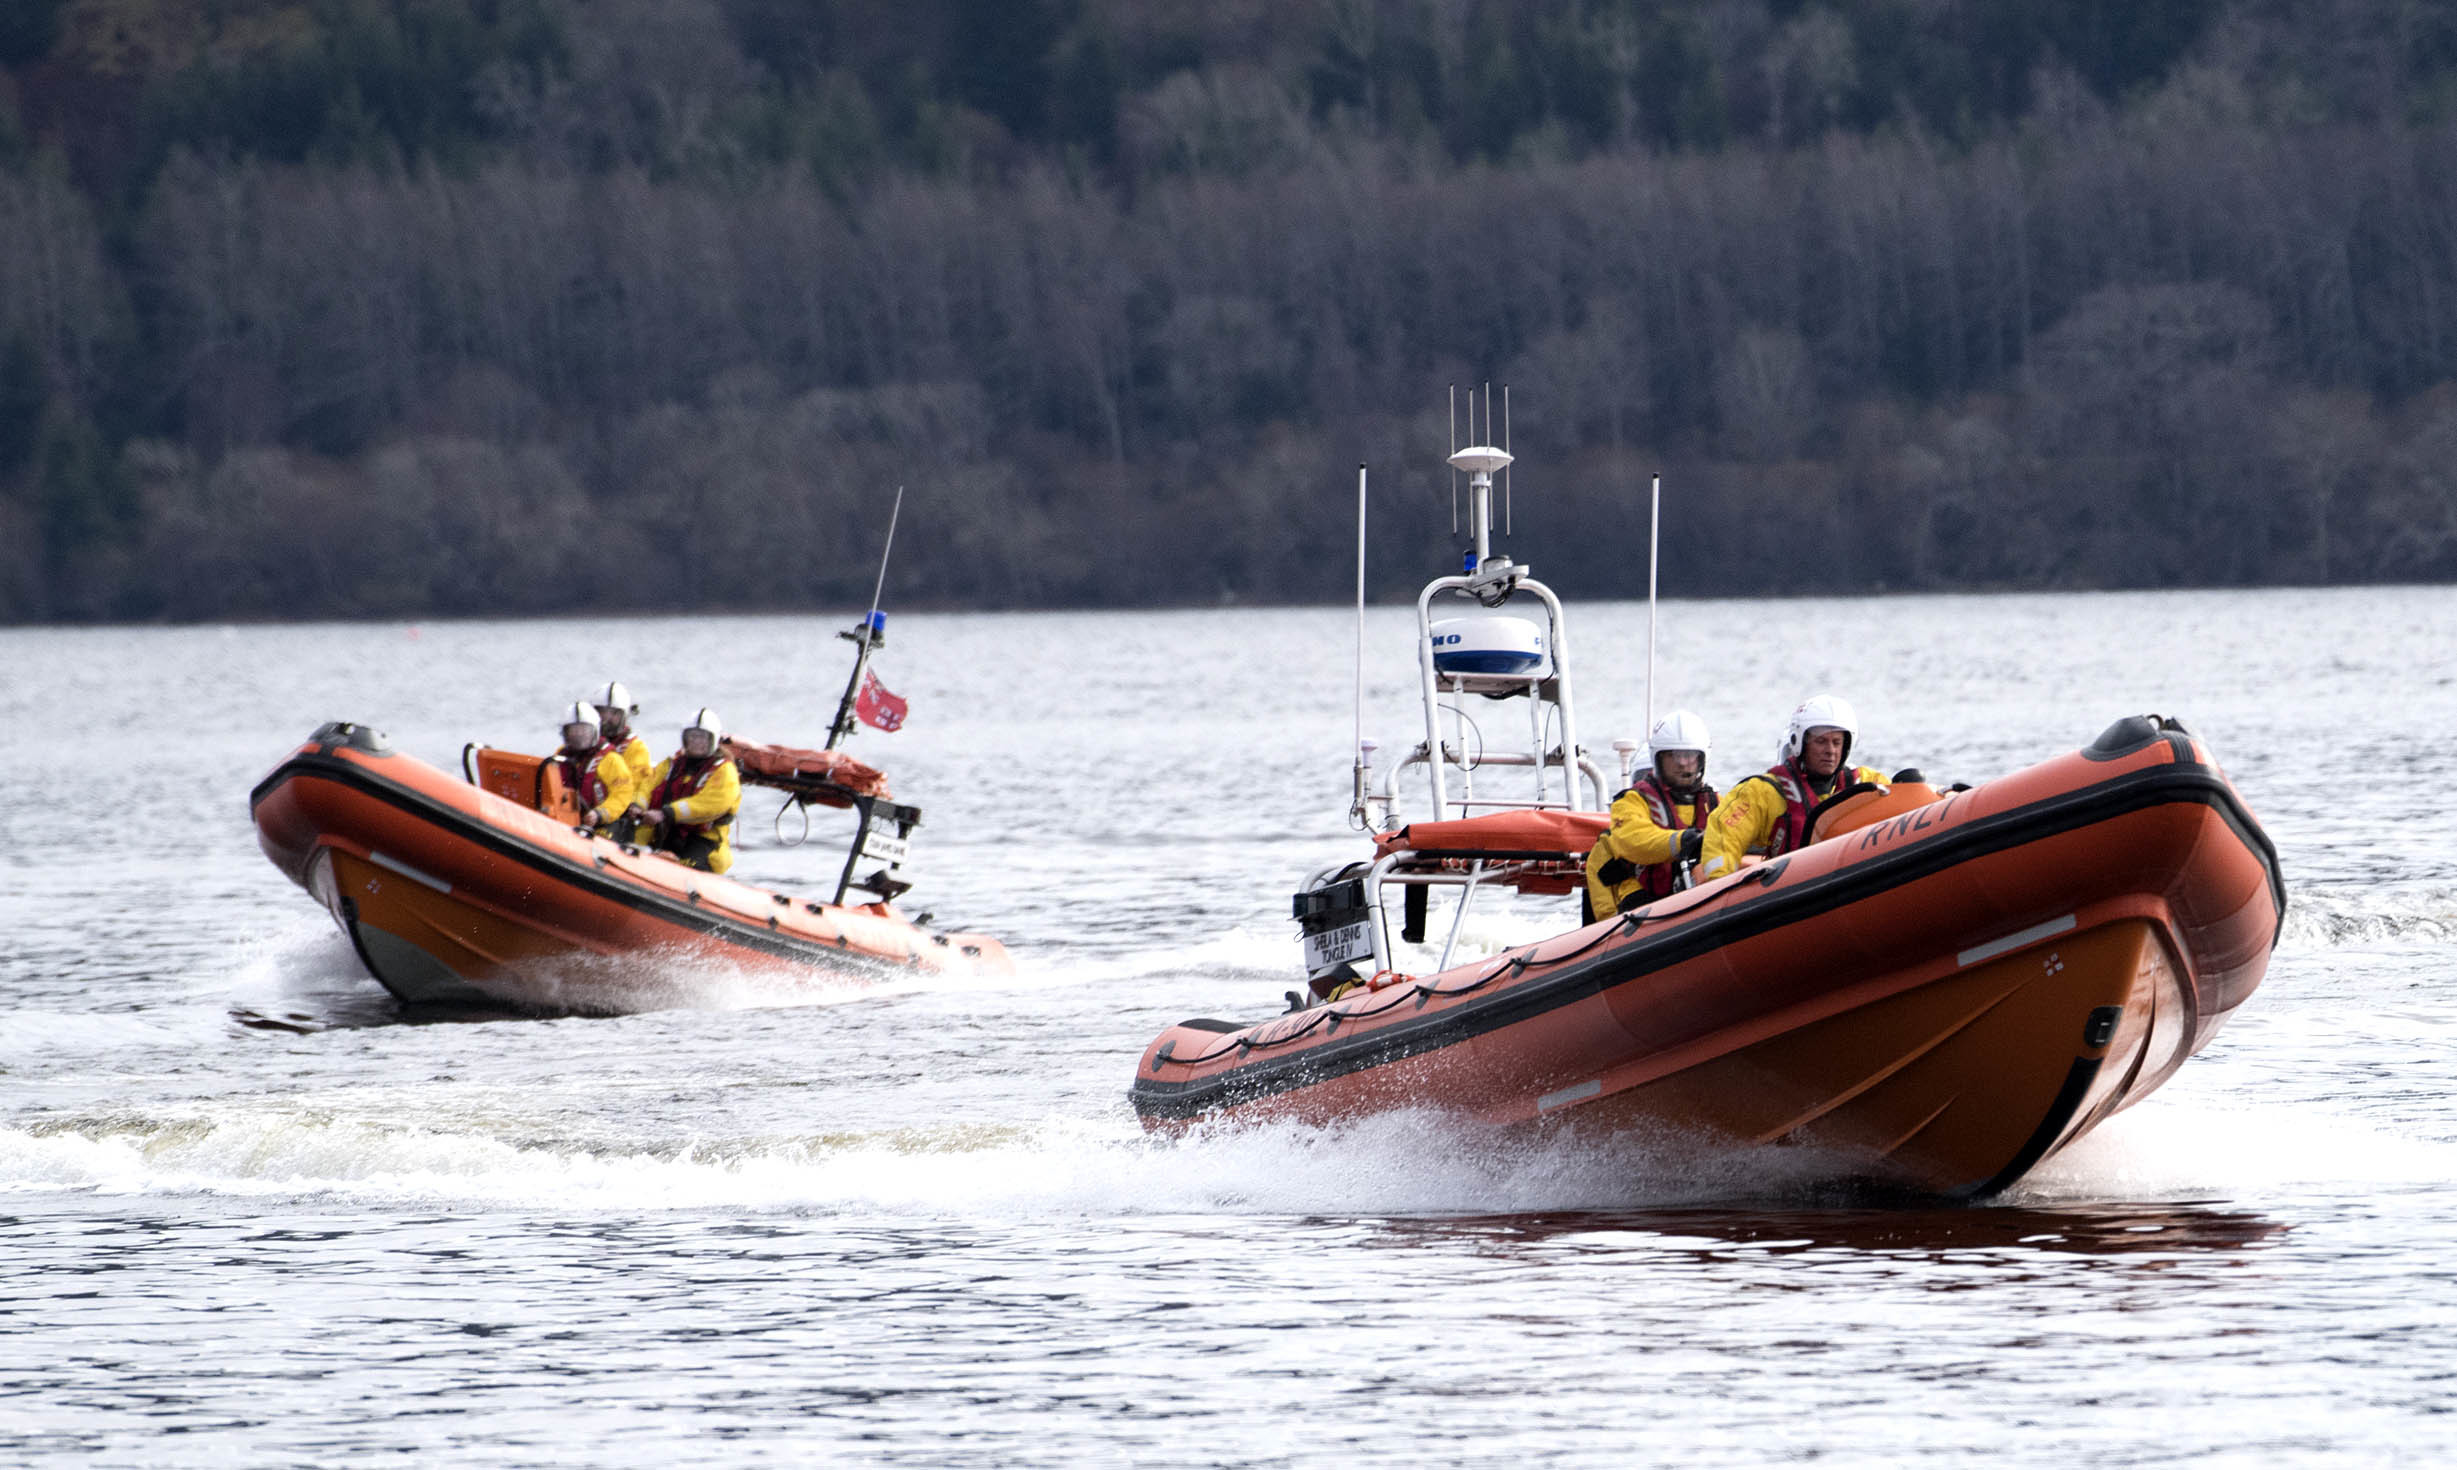 Loch Ness RNLI new Lifeboat Station and Boat.